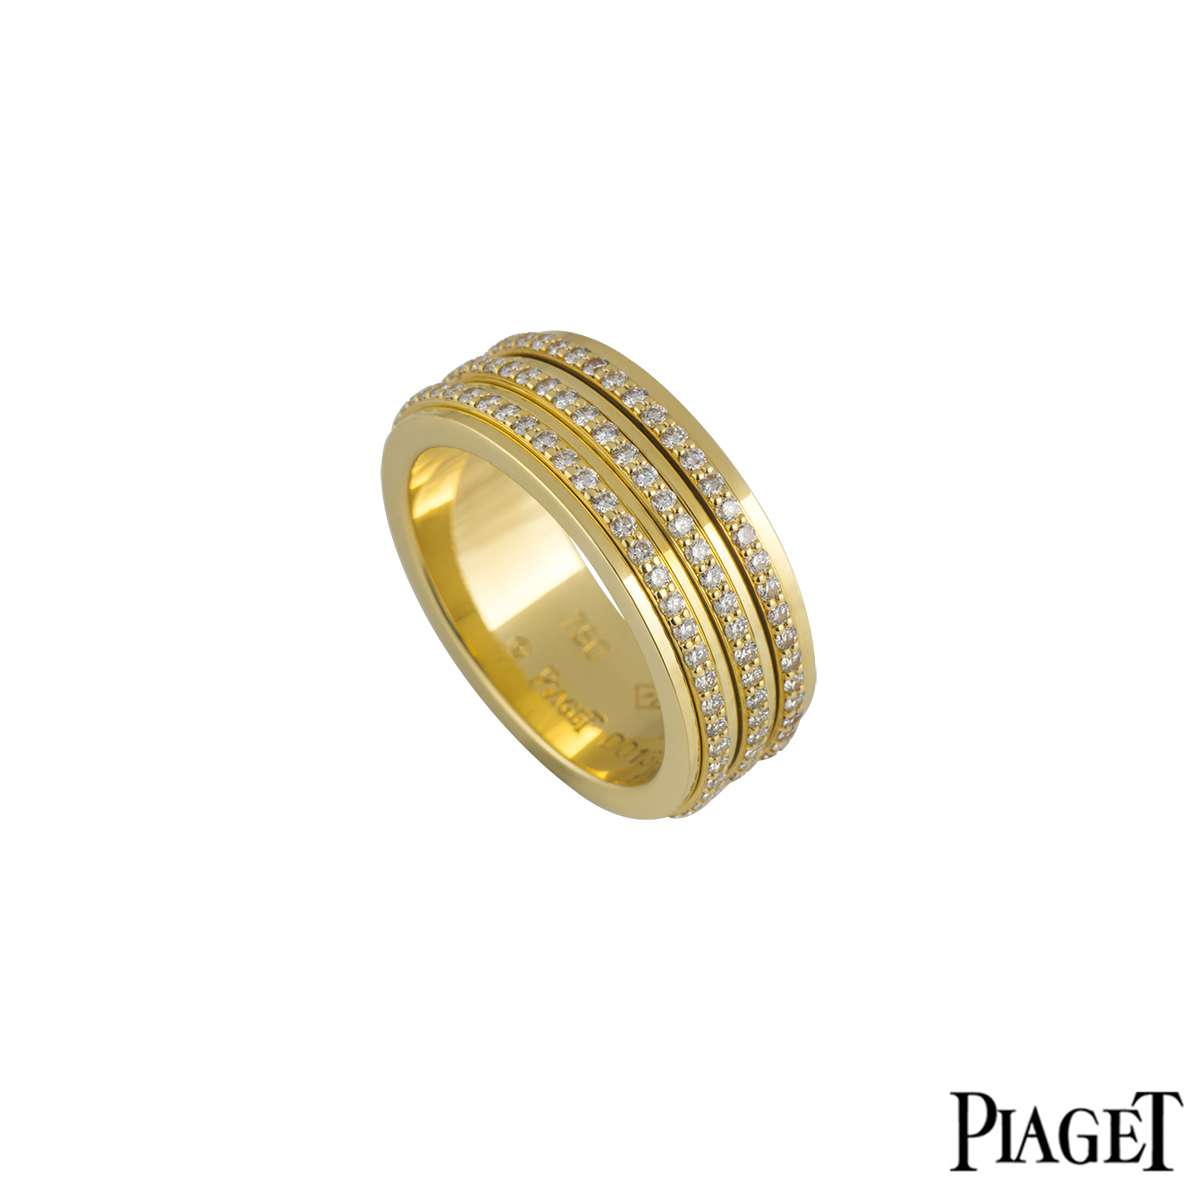 Piaget 18k Yellow Gold Diamond Set Possession Ring 1.40ct G34PO556